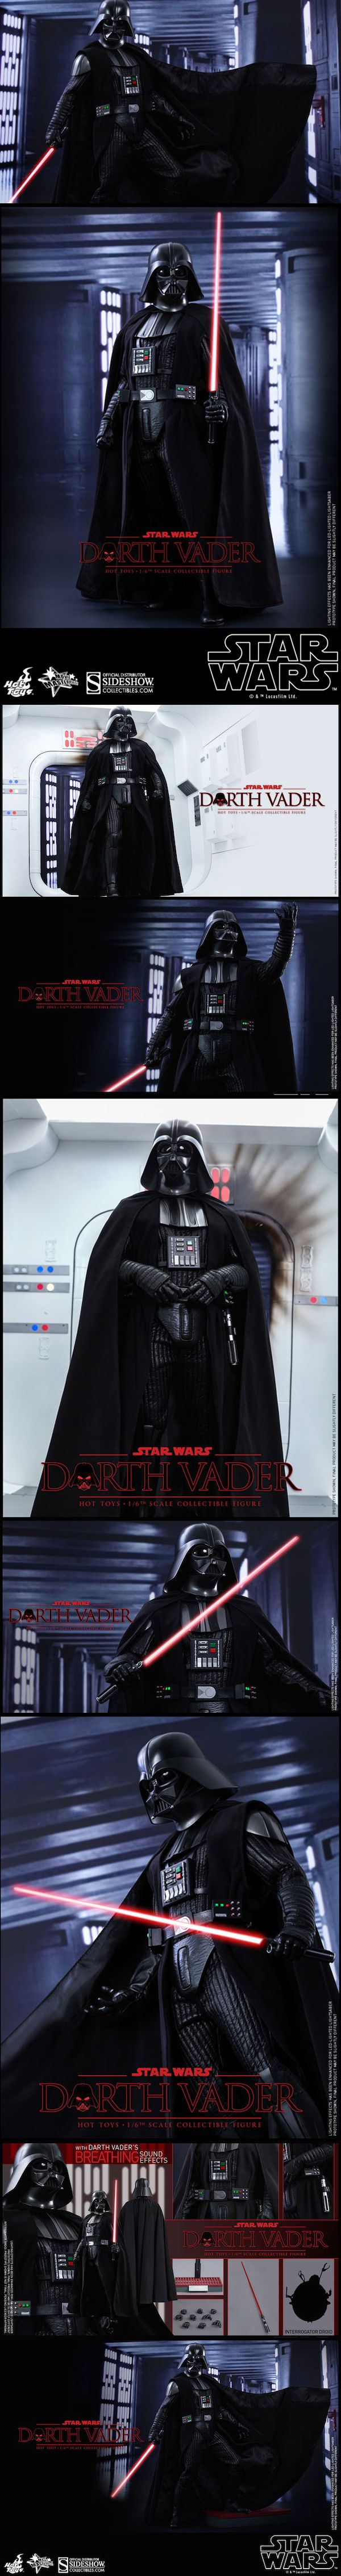 """The New Hot Toys Darth Vader Figure Will Rule Your Toy Shelf This figure includes, """"intricately-constructed Darth Vader armor and helmet, specially tailored suit, built-in sound effect function with Darth Vader's breathing sound, LED-lighted lightsaber and belt, a finely made Interrogator Droid, and a specially designed figure stand."""" Read more at http://nerdapproved.com/approved-products/the-new-hoy-toys-darth-vader-will-rule-your-toy-shelf/#6XXHltwRuWfdVGU5.99"""